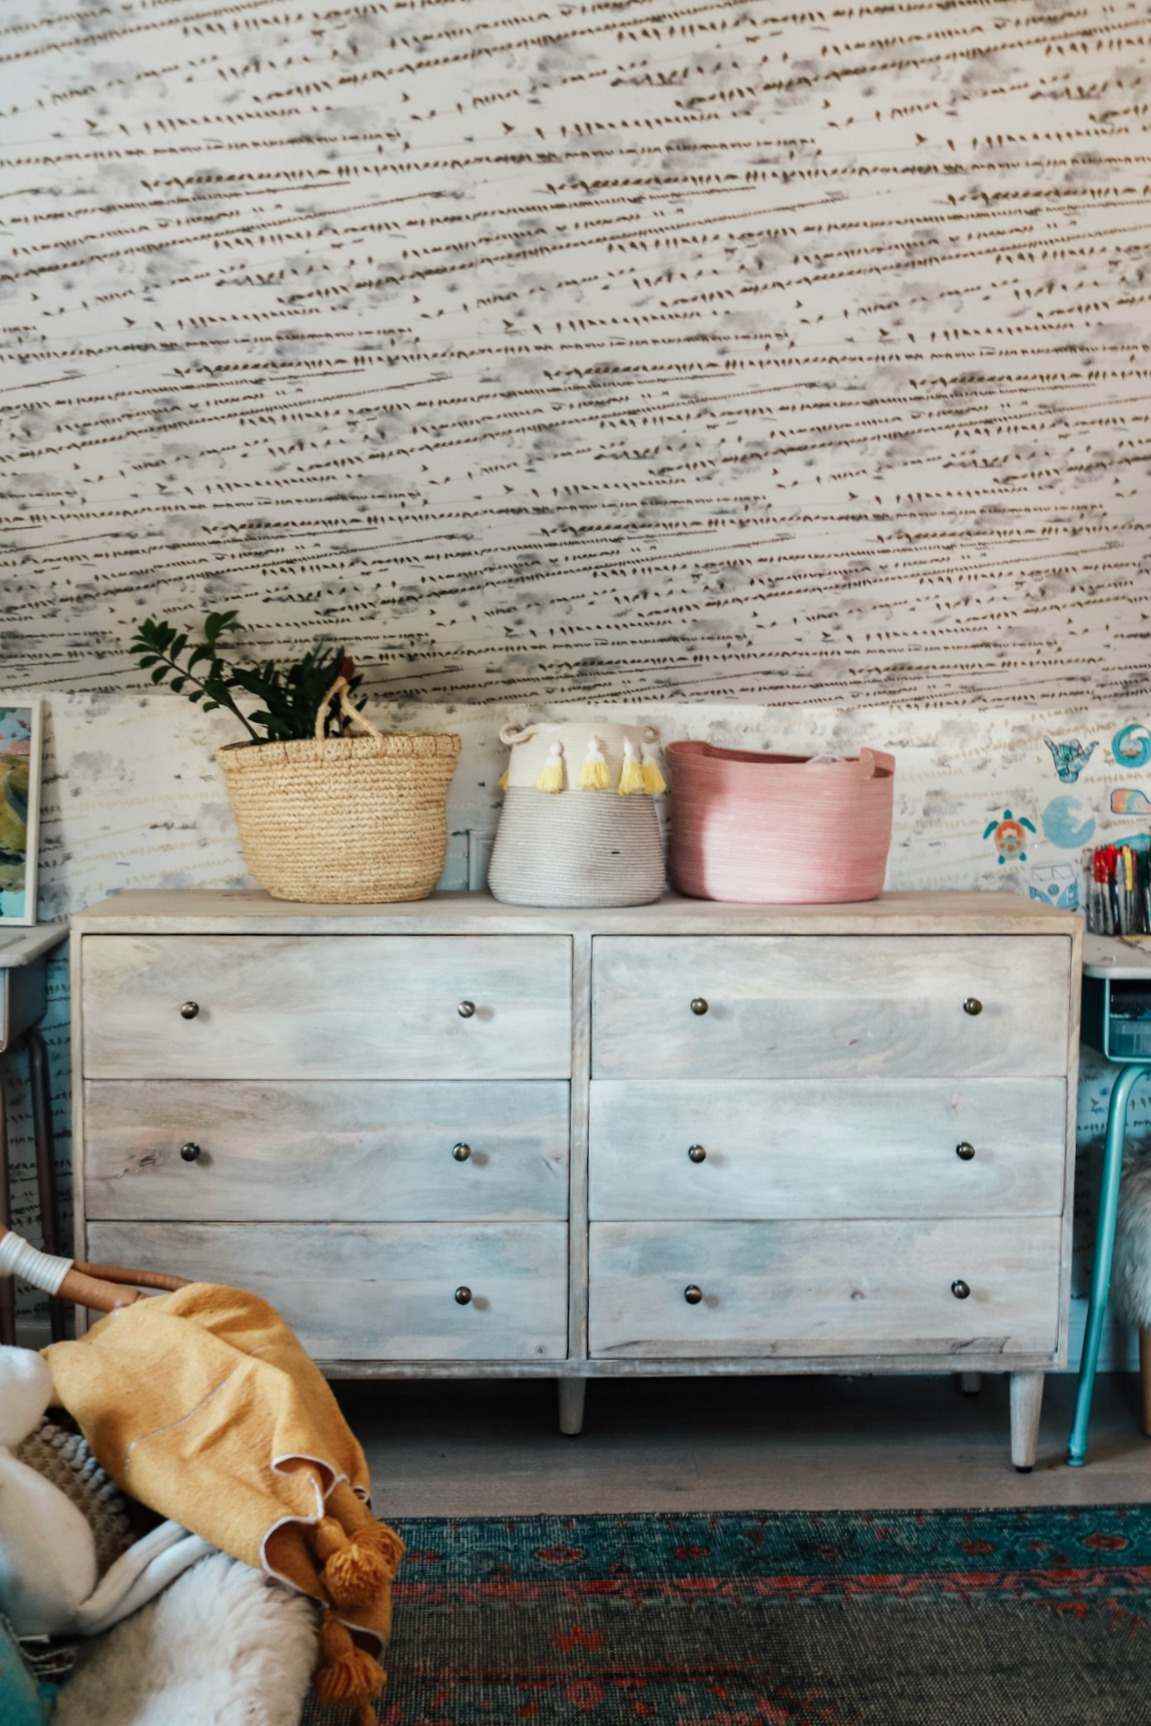 Affordable Dresser Round-Up!